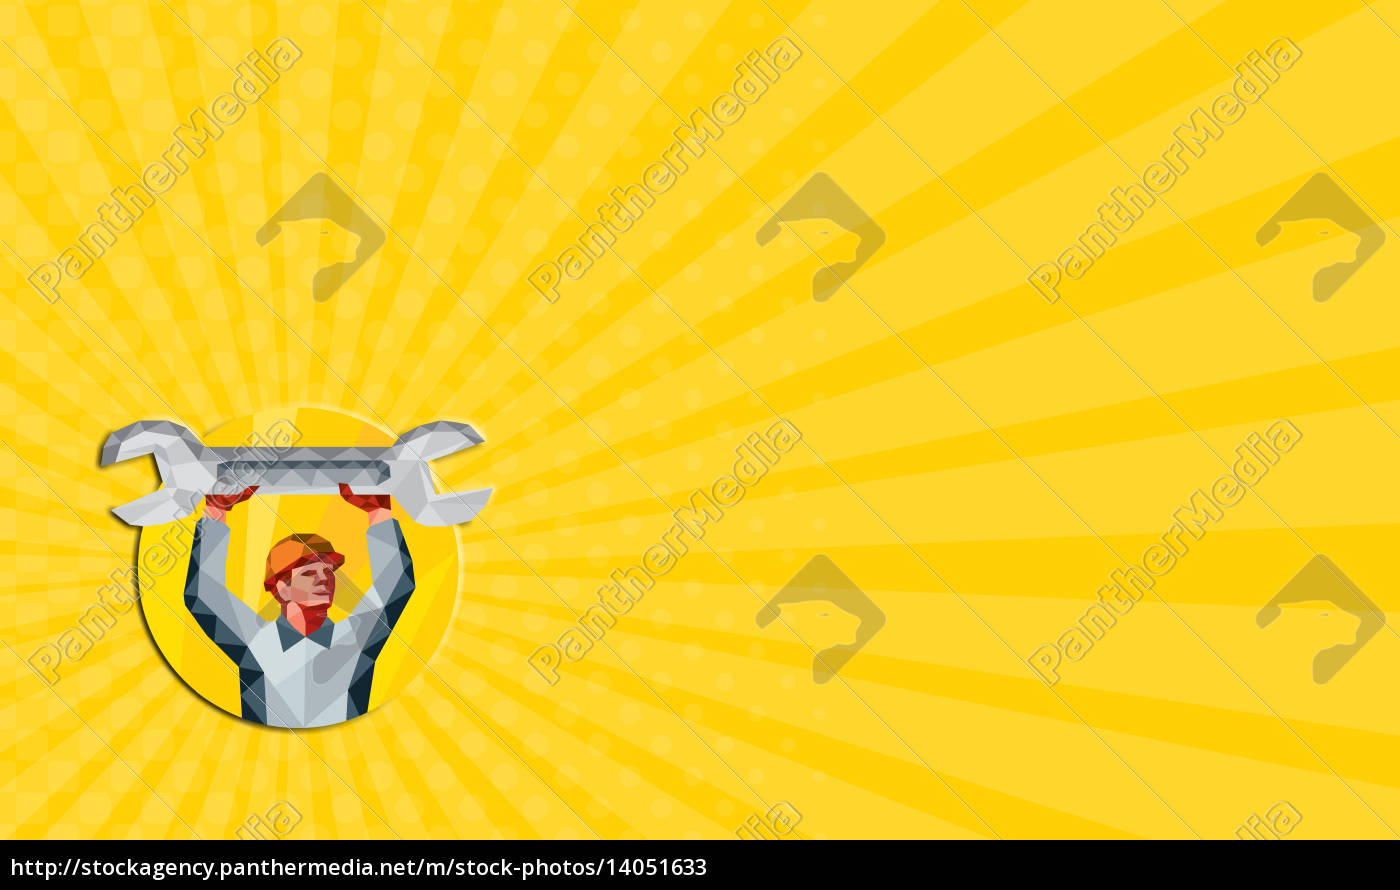 business, card, mechanic, spanner, wrench, circle - 14051633